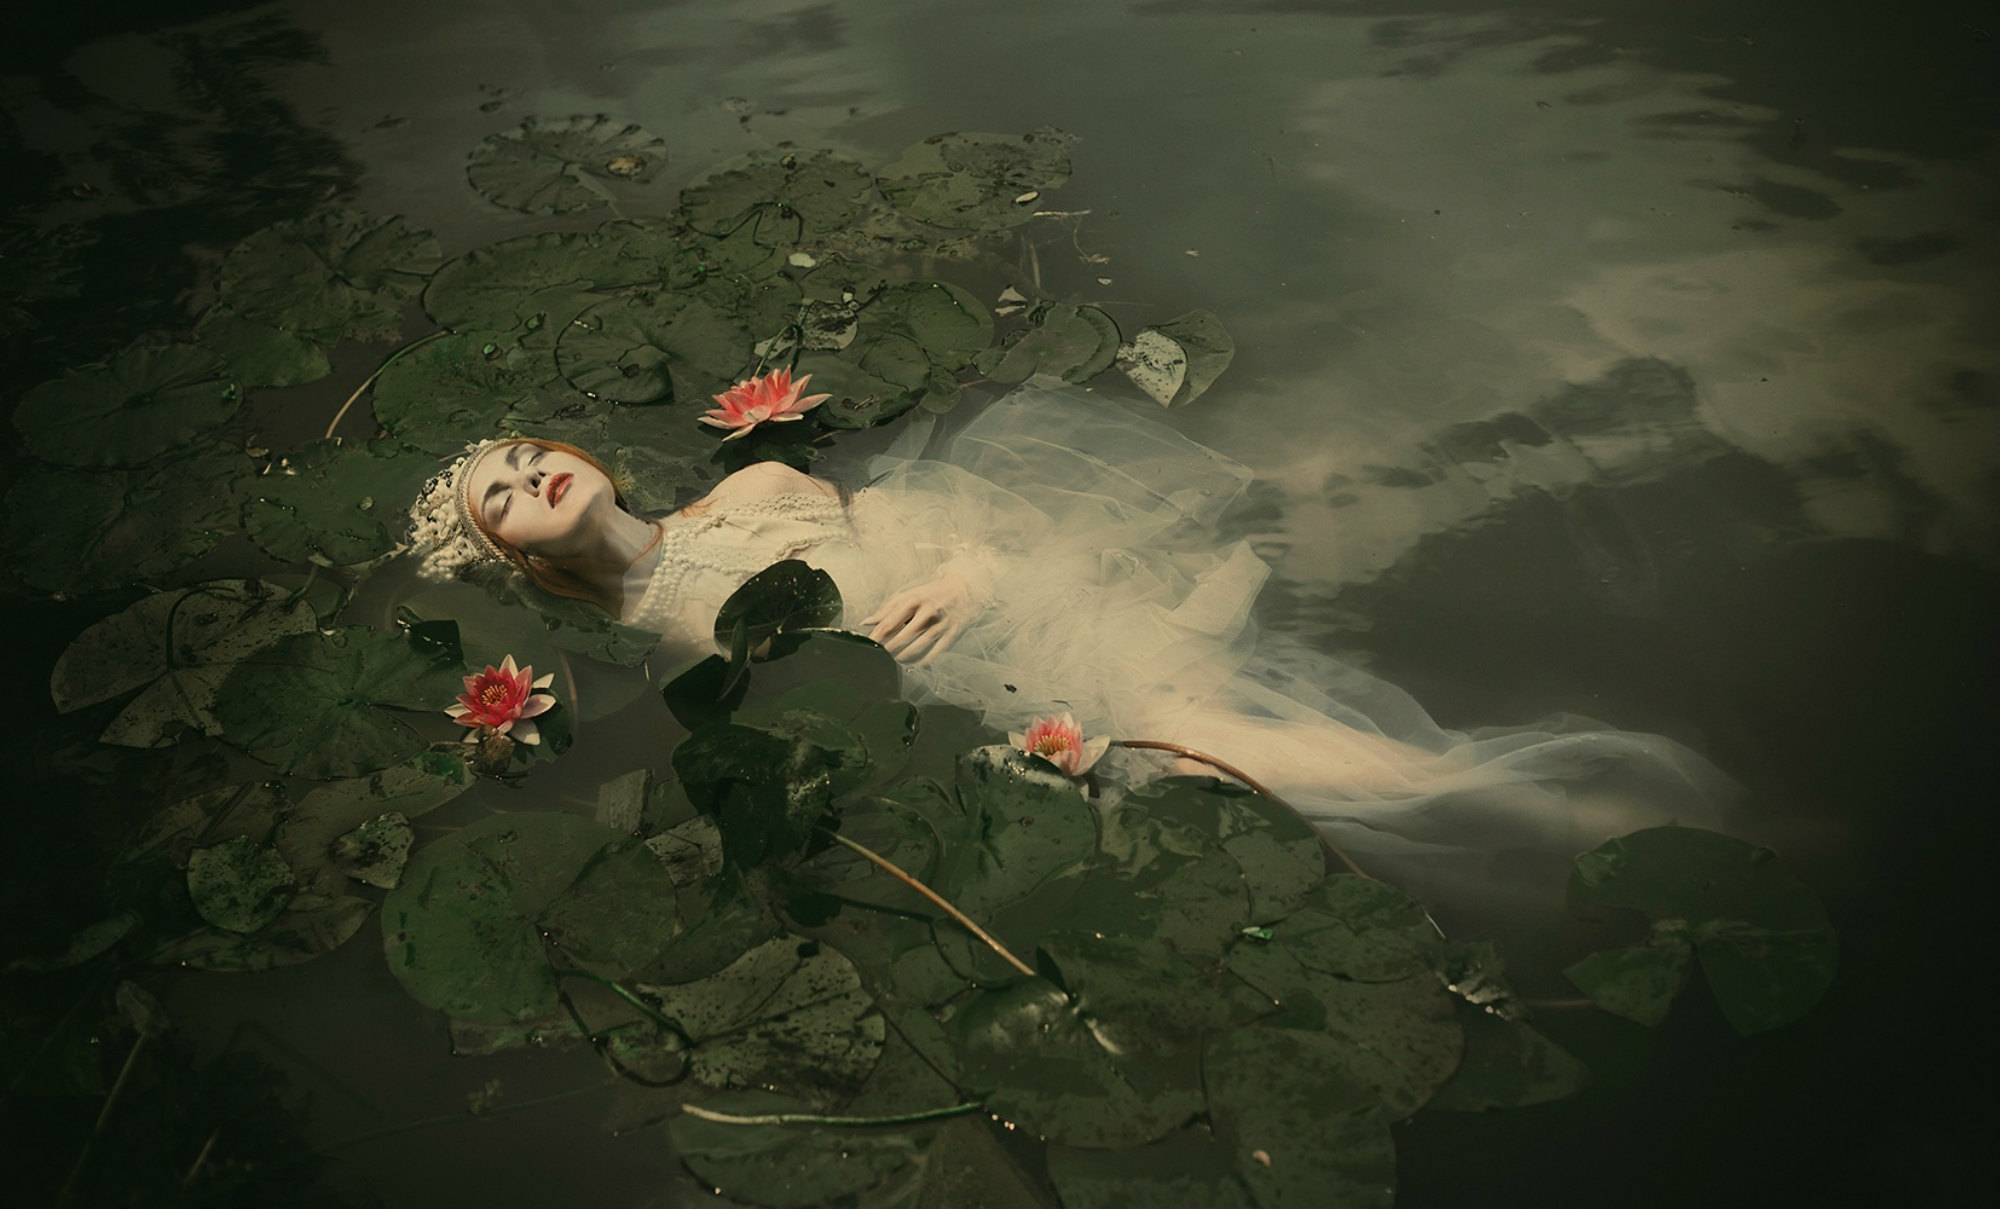 dorota gorecka dreamy photography ophelia water model